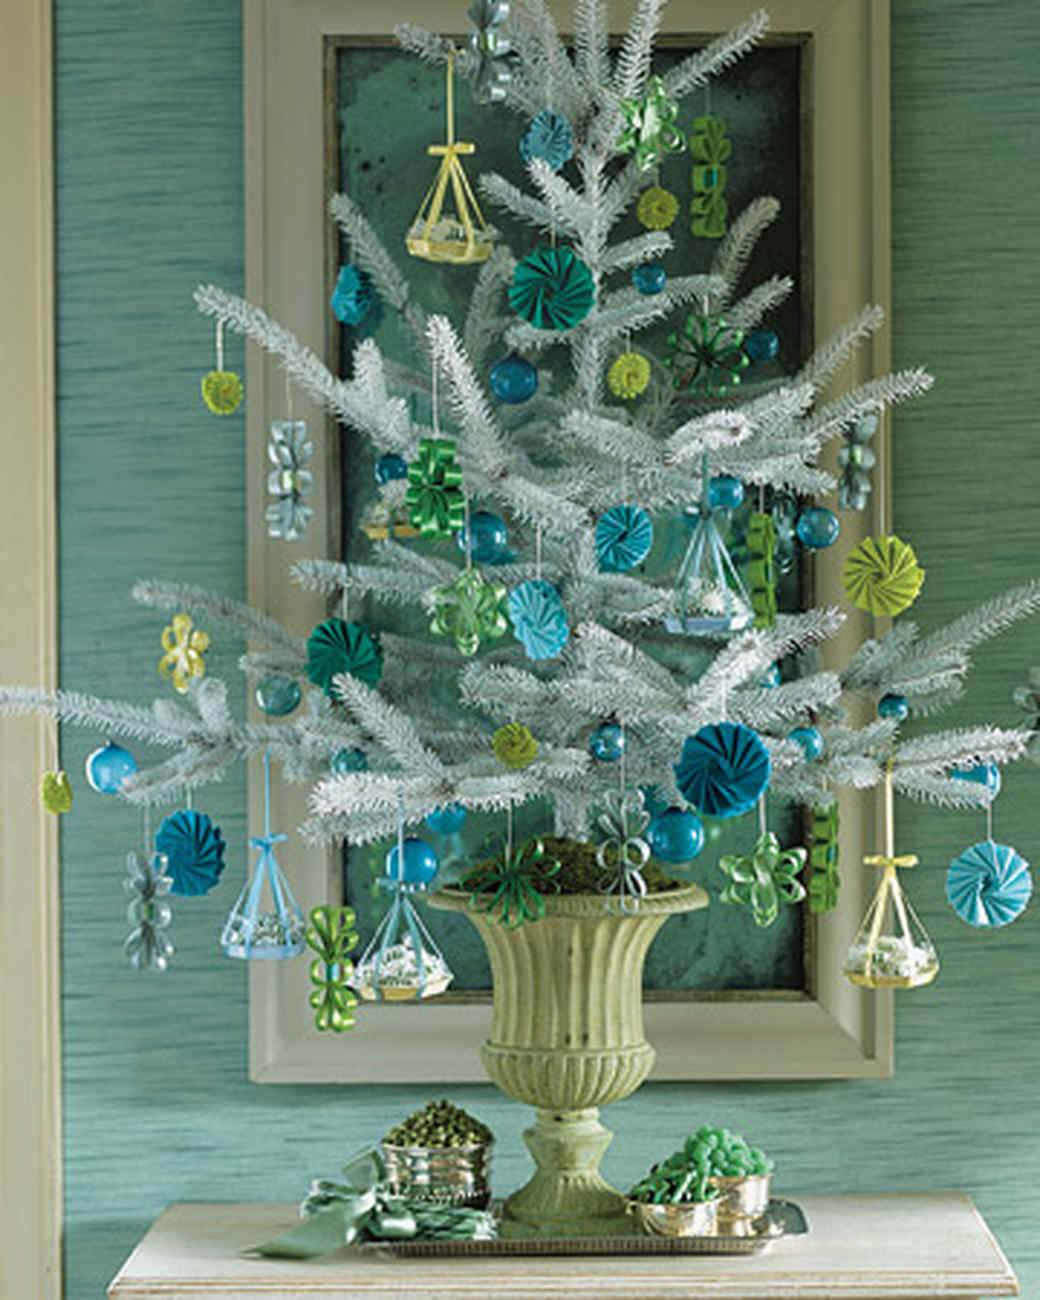 28 creative christmas tree decorating ideas martha stewart - Blue Christmas Tree Decoration Ideas